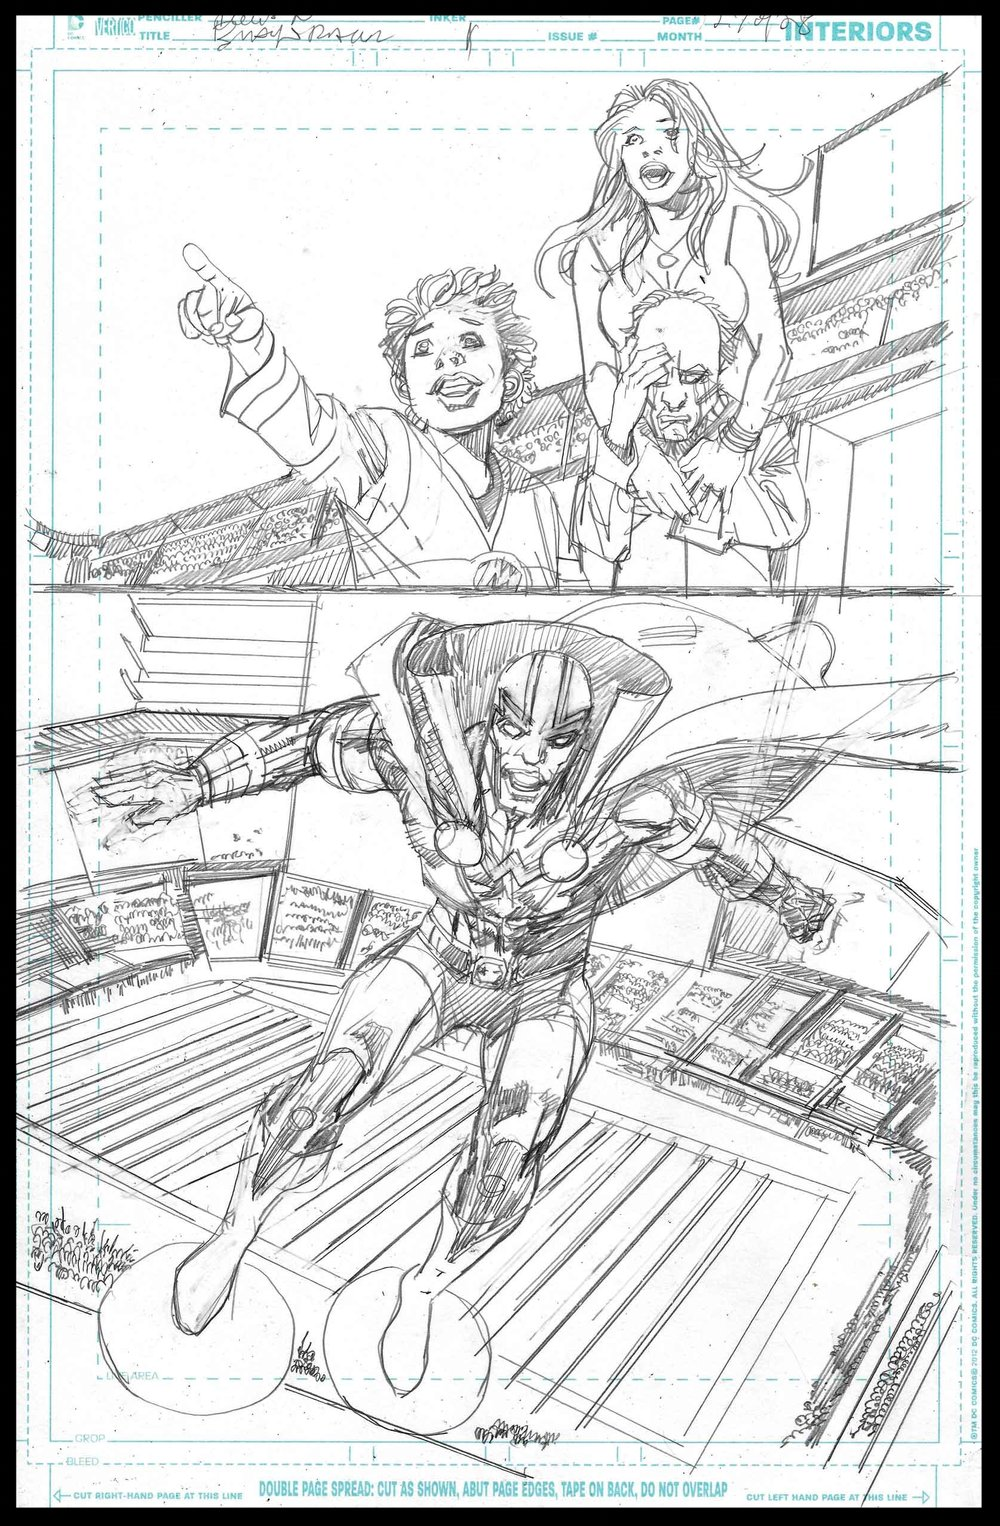 Black Racer #1 - Page 27 - Pencils